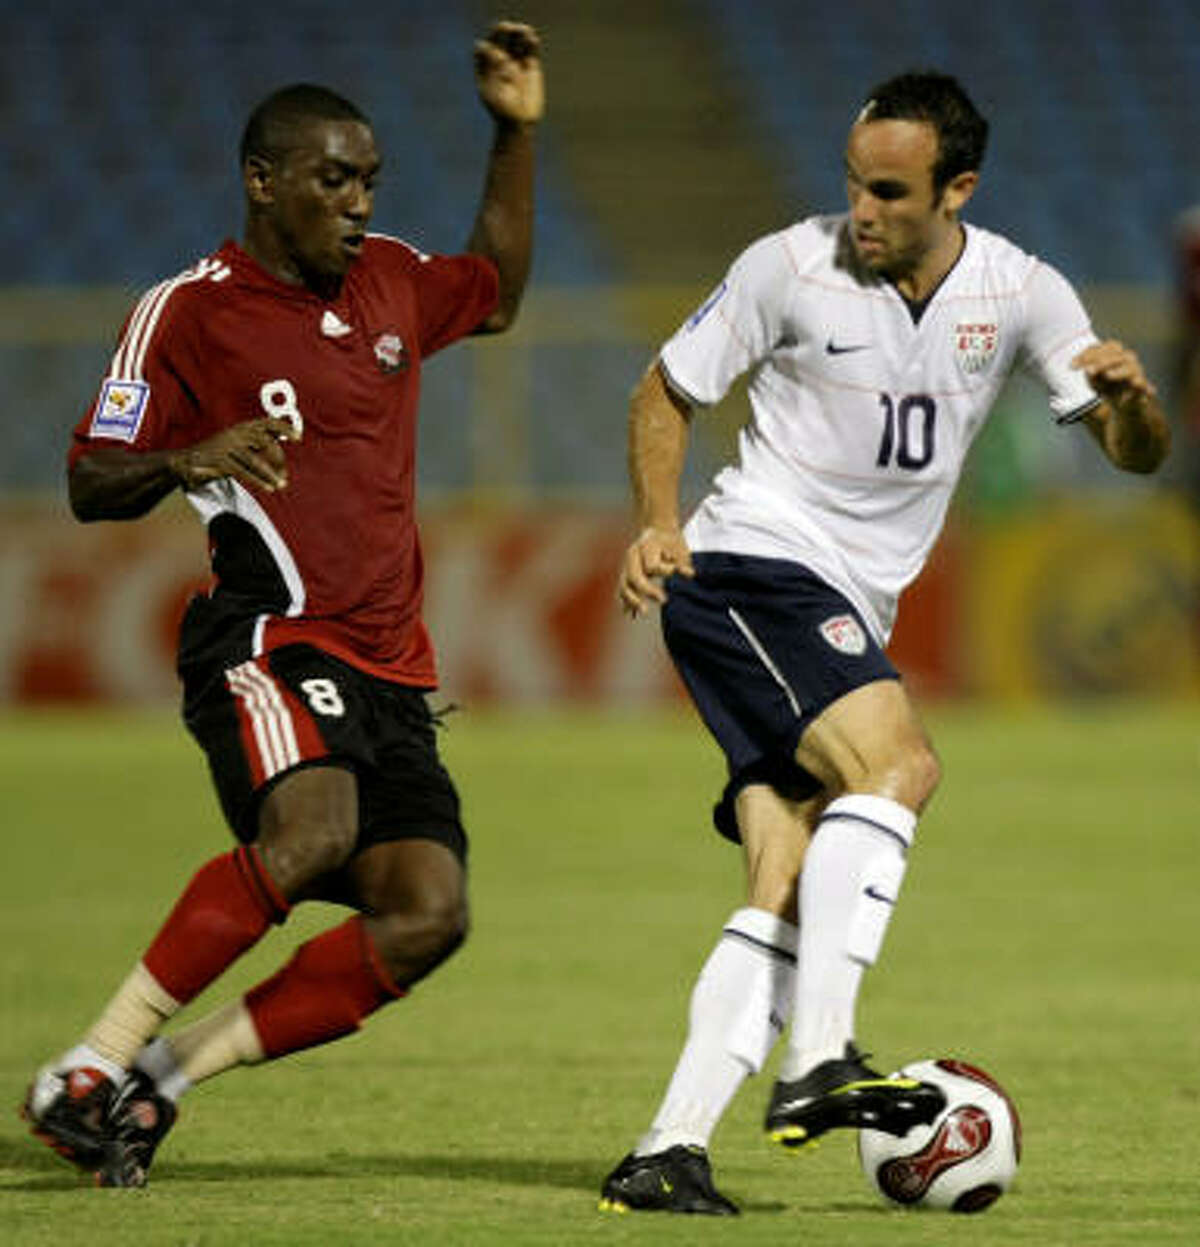 U.S. striker Landon Donovan, right, fights for the ball with Trinidad and Tobago's Trent Noel.